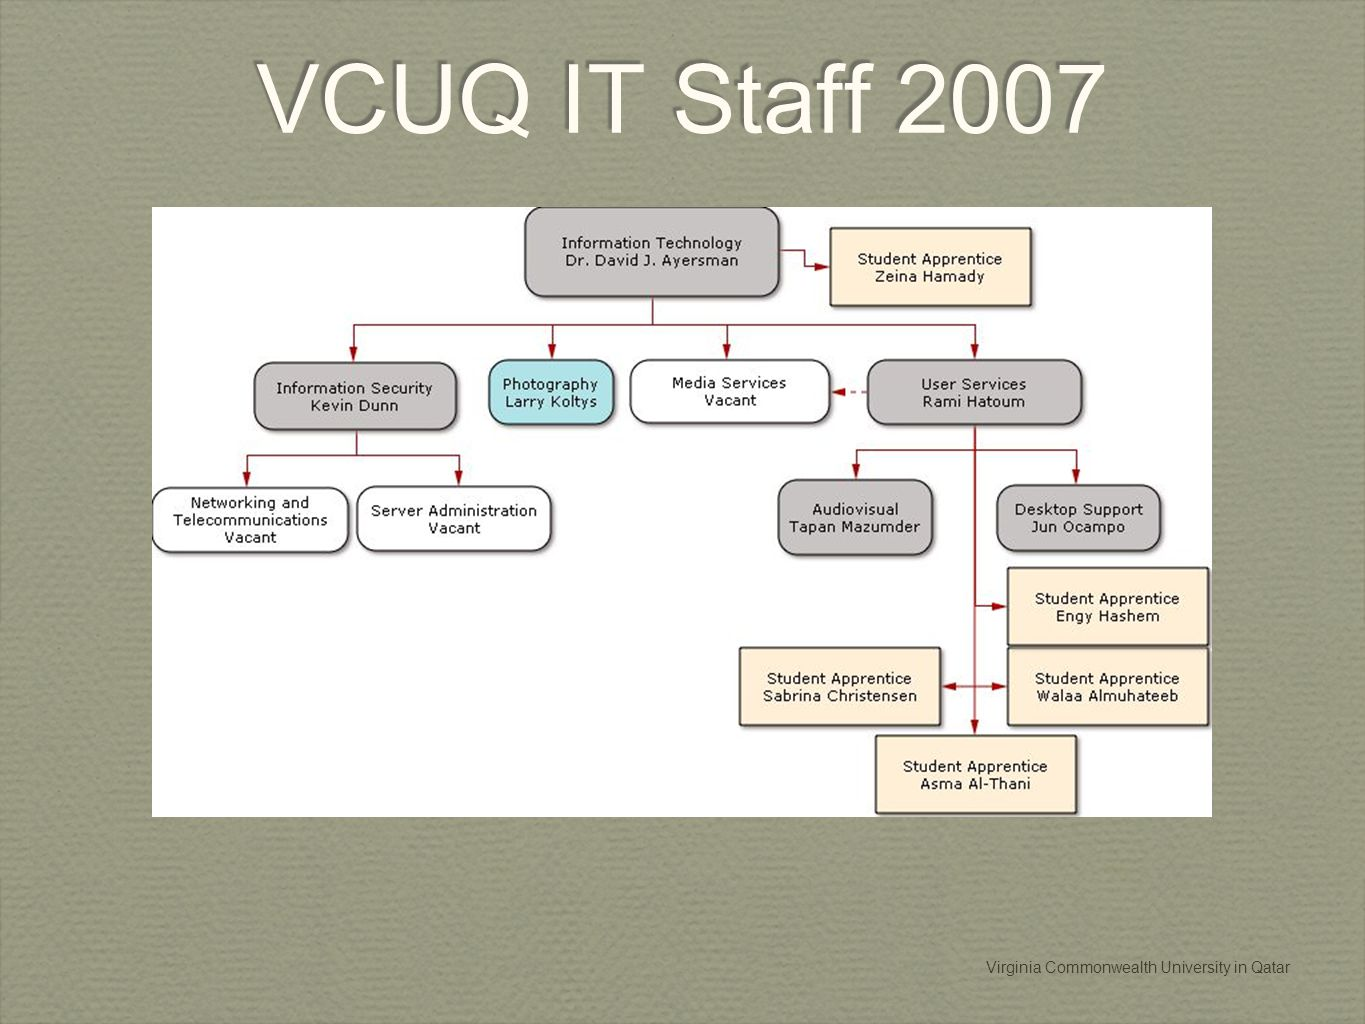 Virginia Commonwealth University in Qatar VCUQ IT Staff 2007